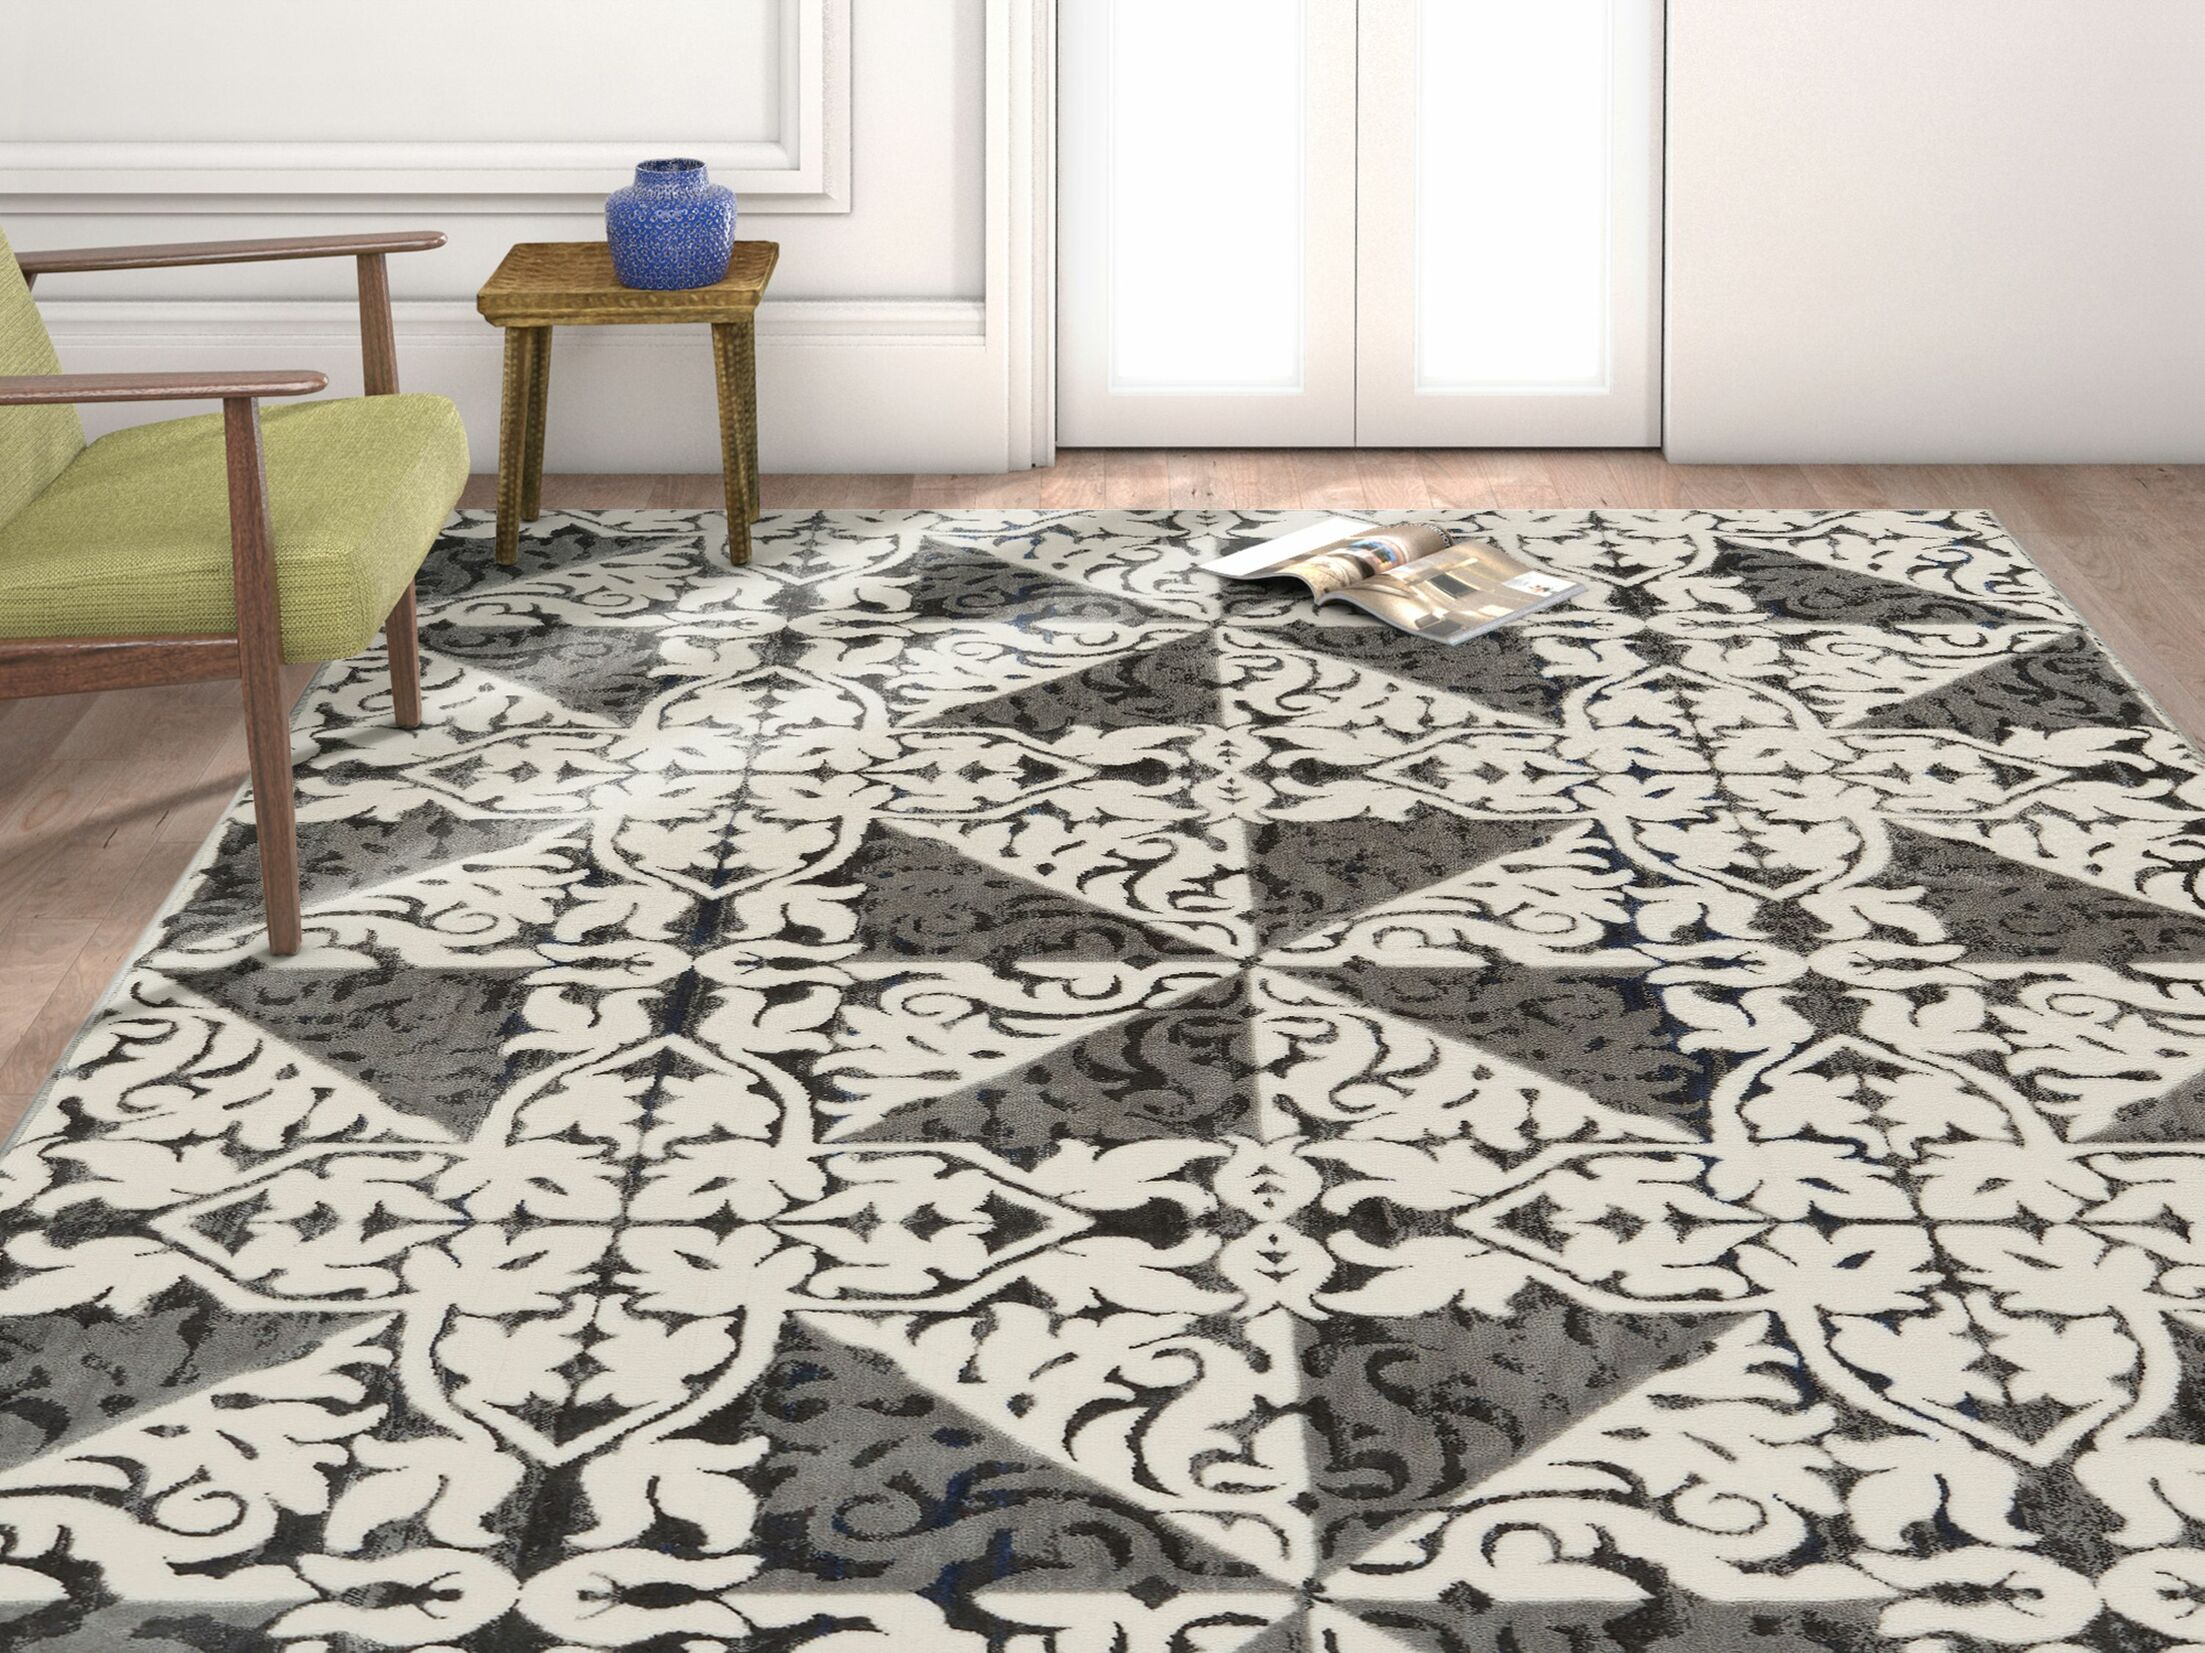 Rotella Floral Tile Gray Area Rug Rug Size: Rectangle 7'10